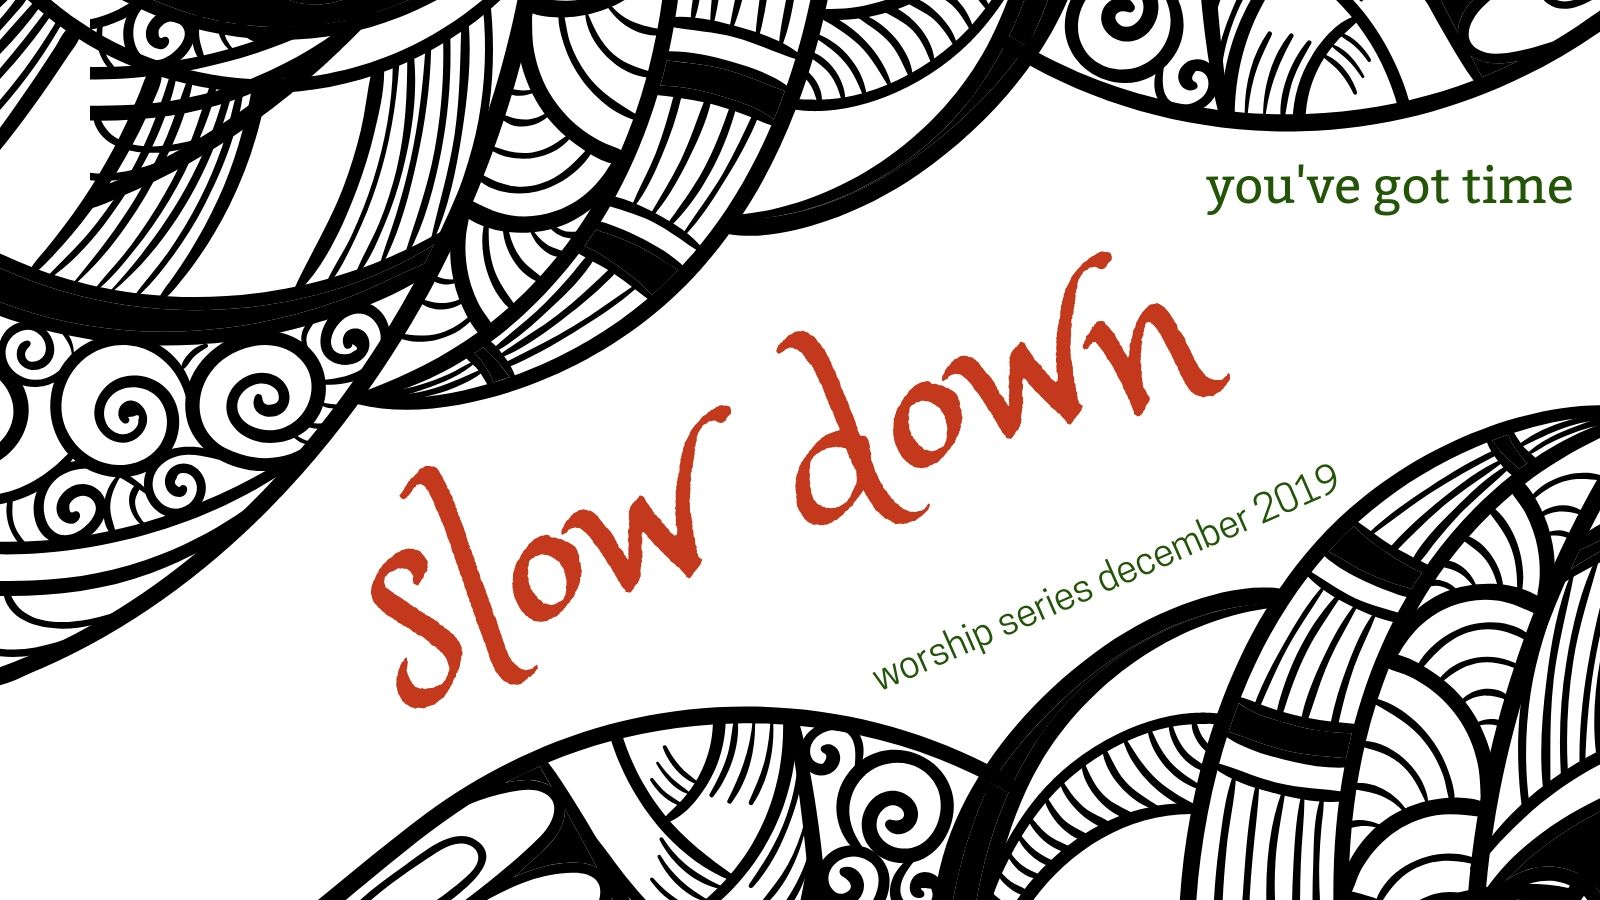 Such Good News in Time for Christmas (Slow Down: week 4)